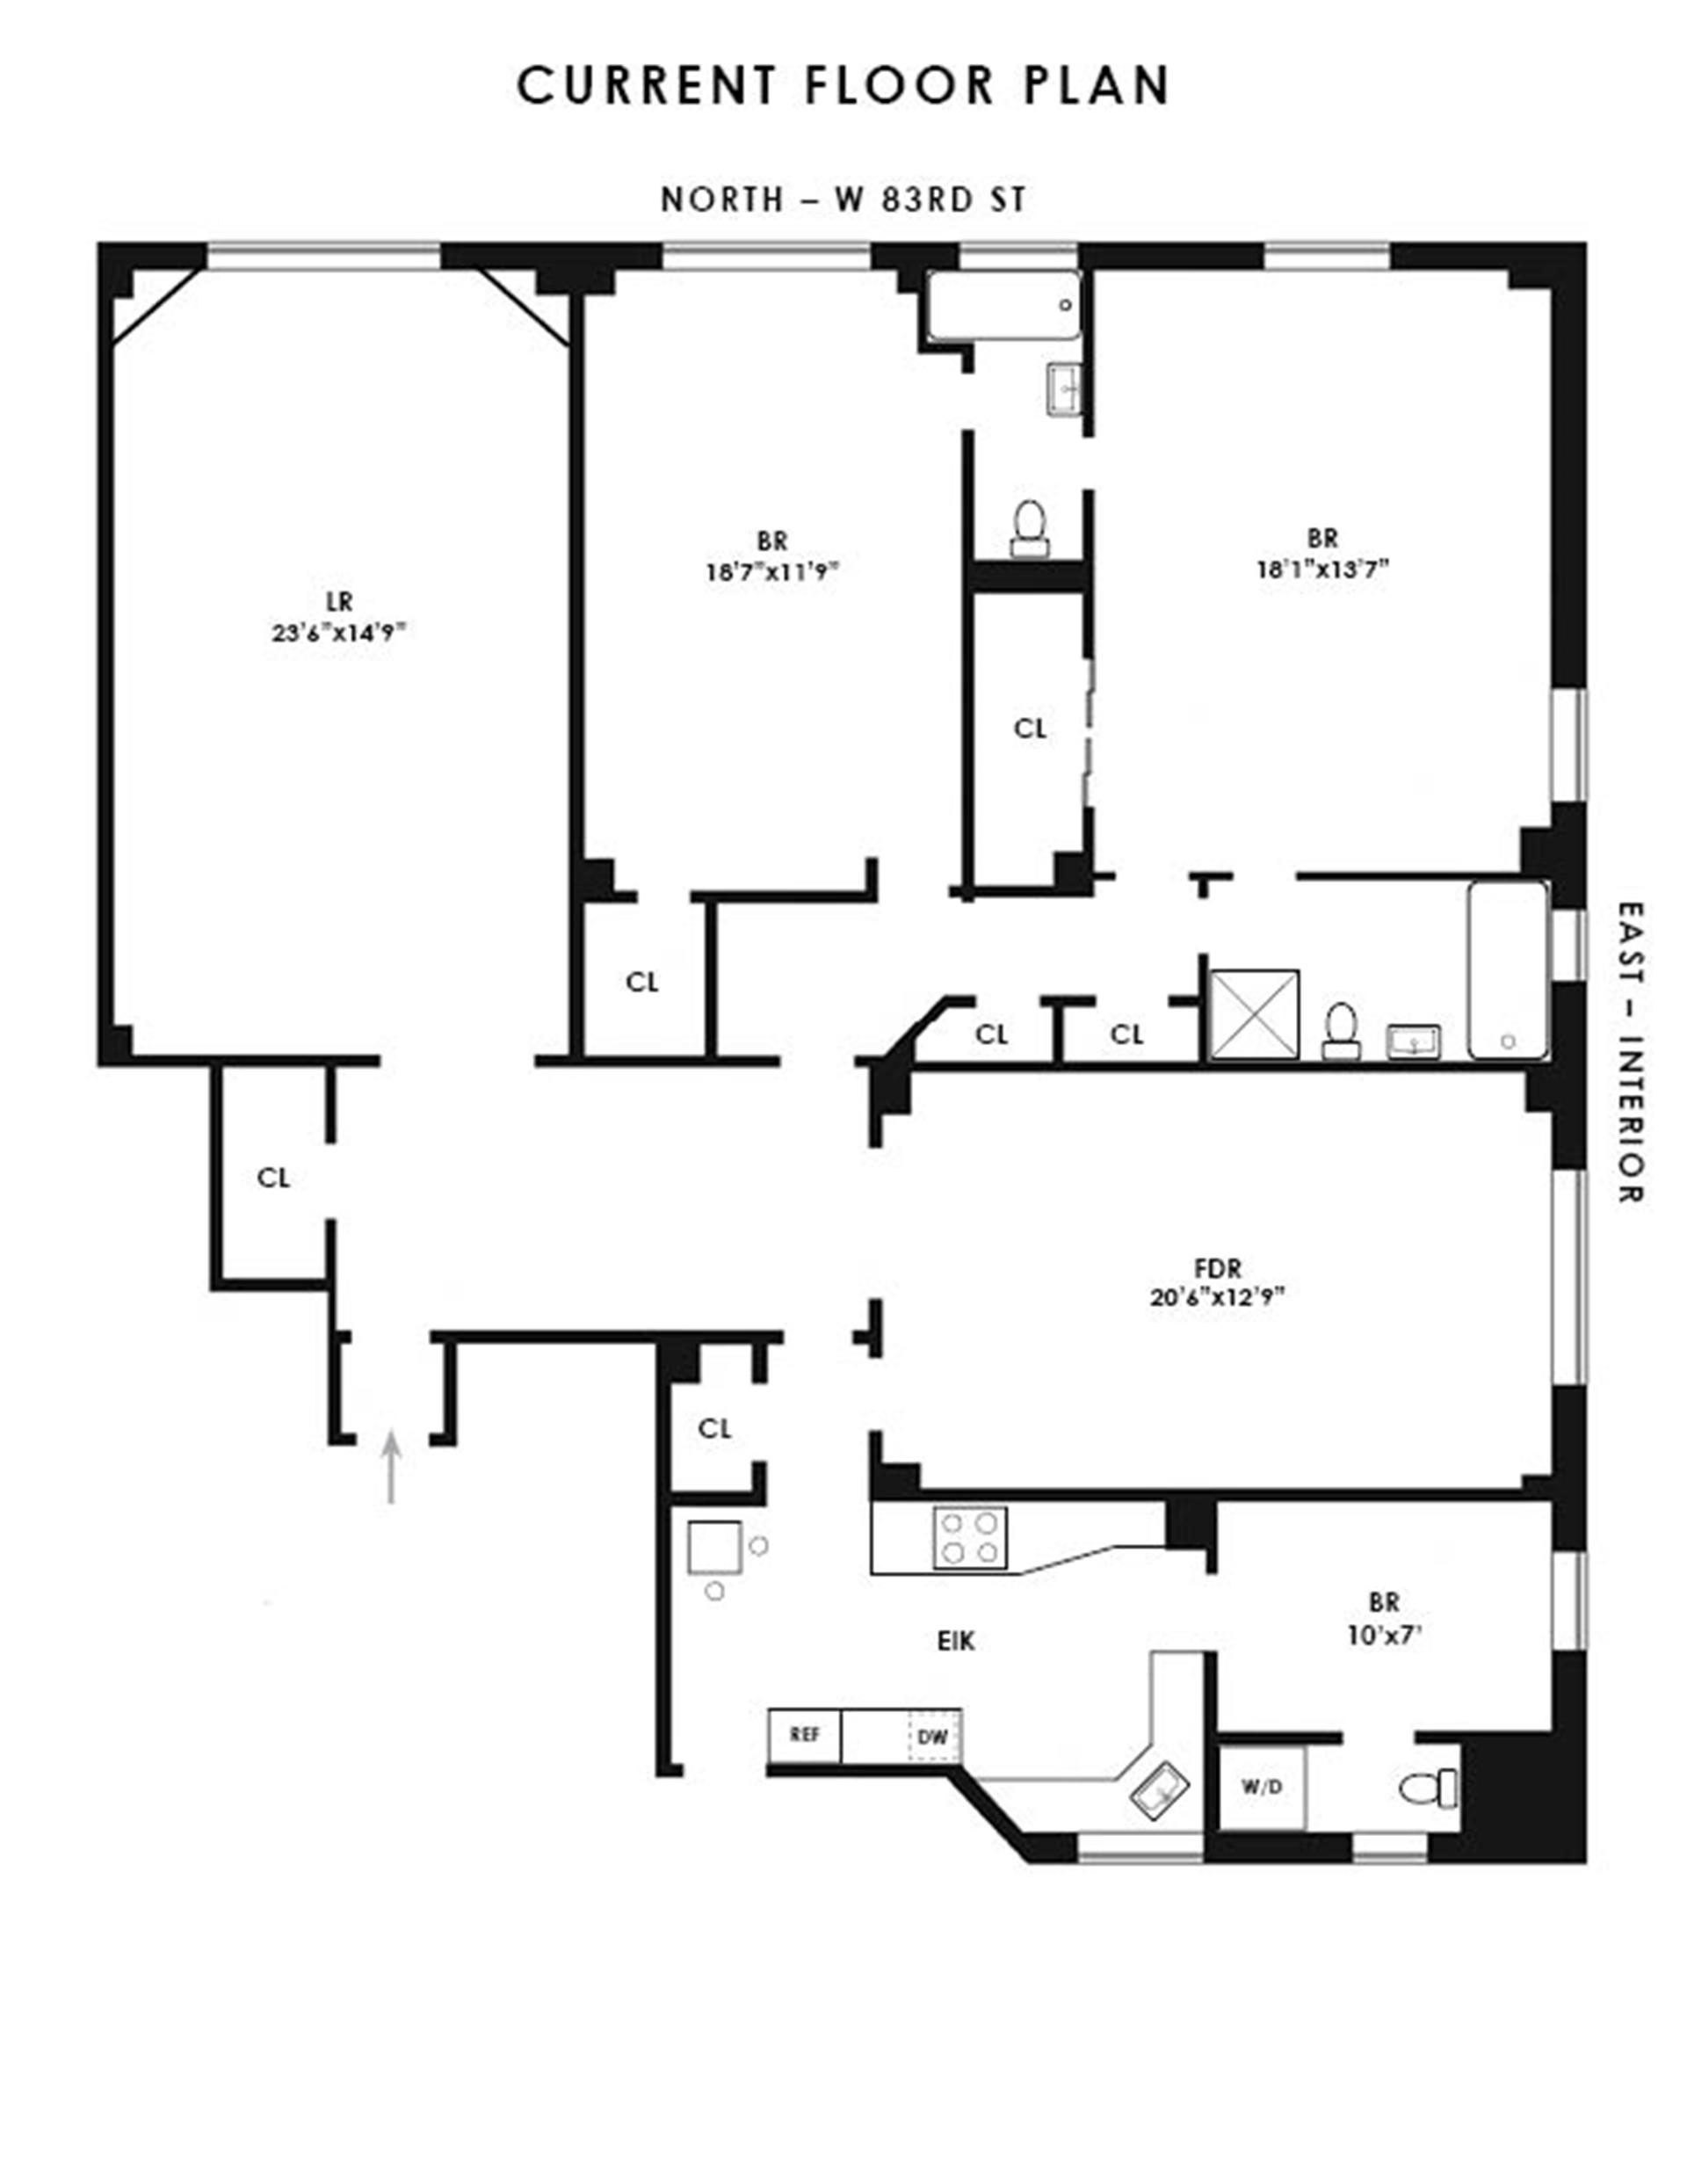 Floor plan of 470 West End Avenue, 4E - Upper West Side, New York